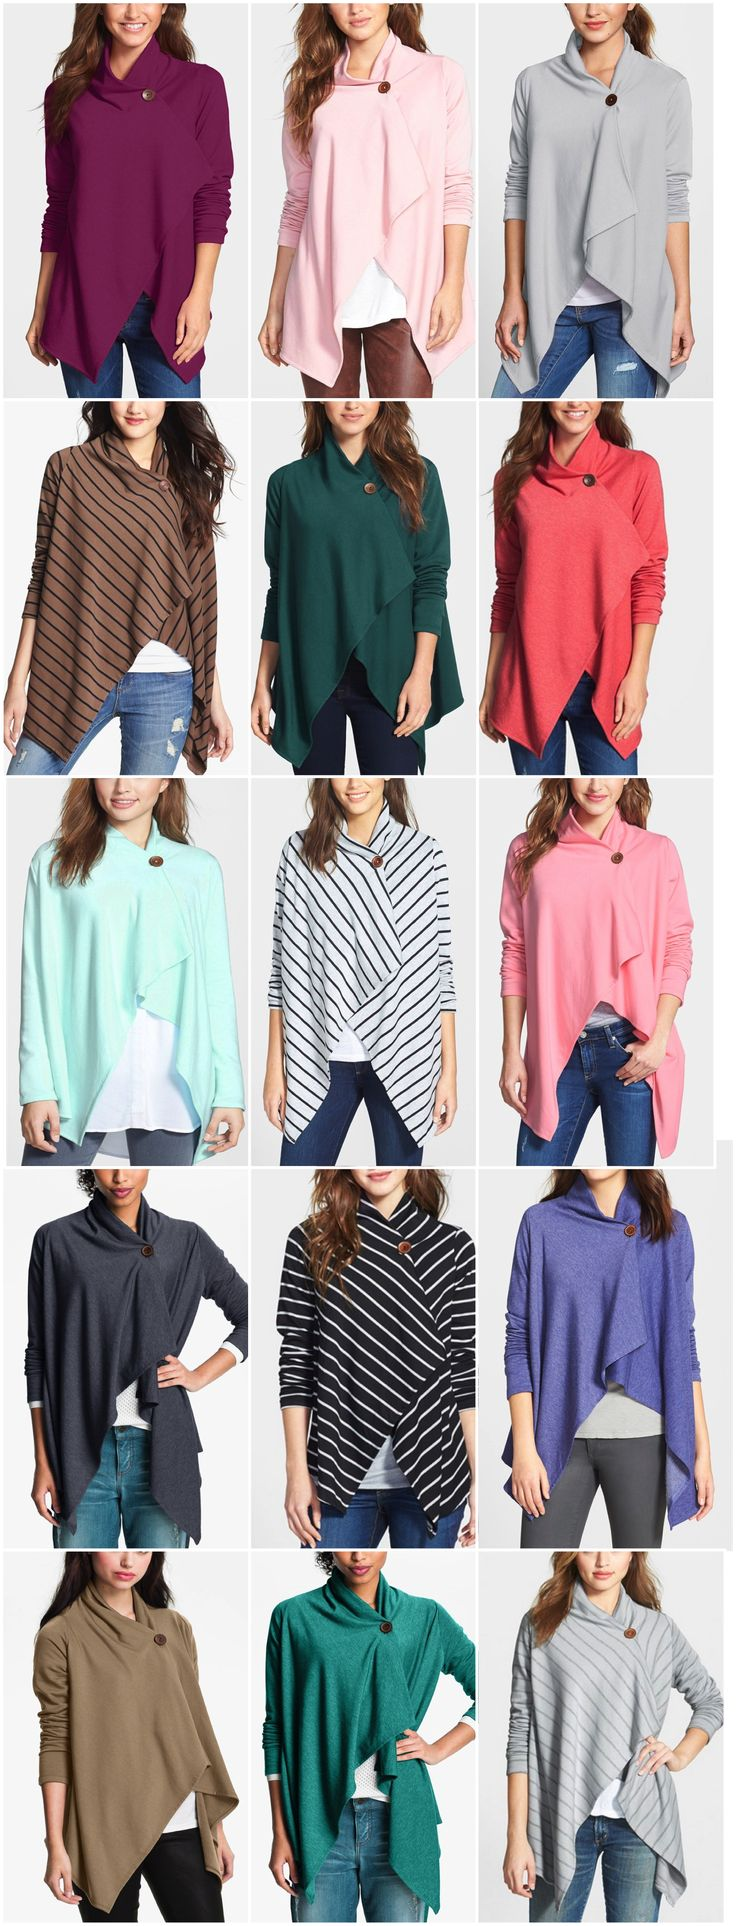 Asymmetrical Fleece Wrap Cardigans: I'll take one in each color, please!